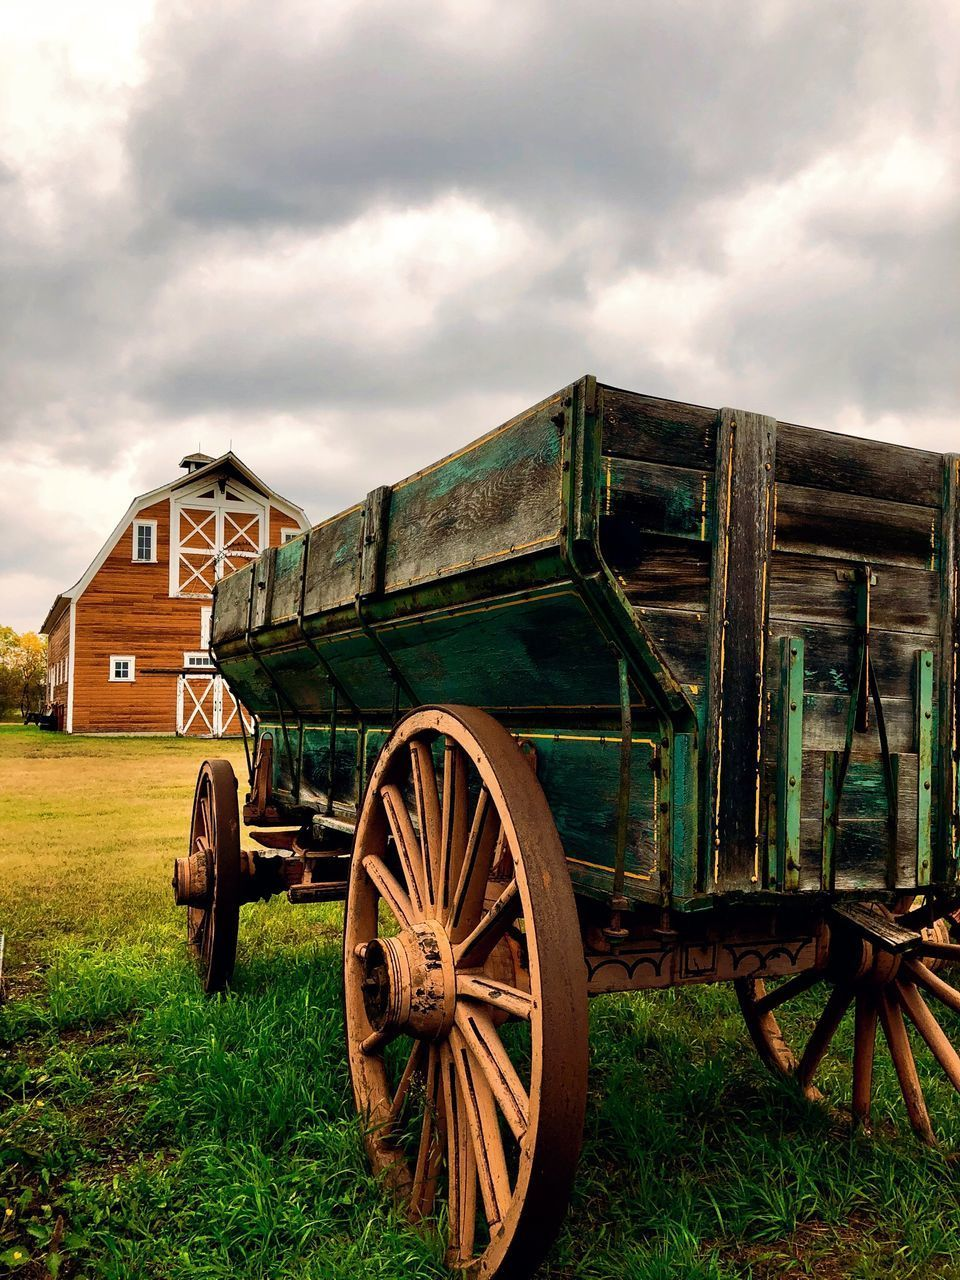 OLD CART ON FIELD